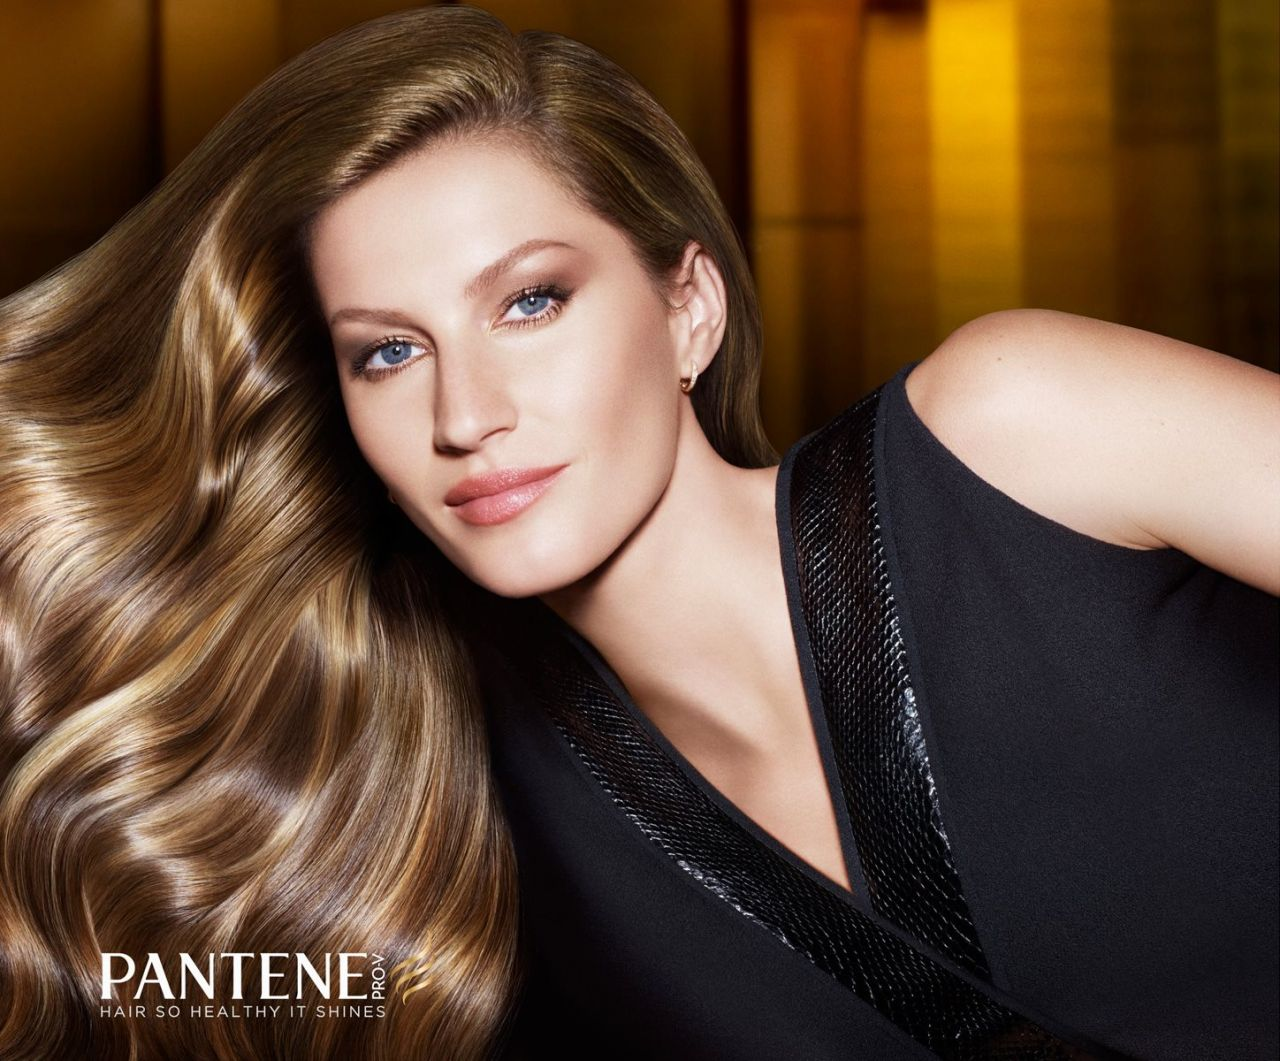 Gisele Bundchen - Photoshoot For Pantene Campaign 2014-8693